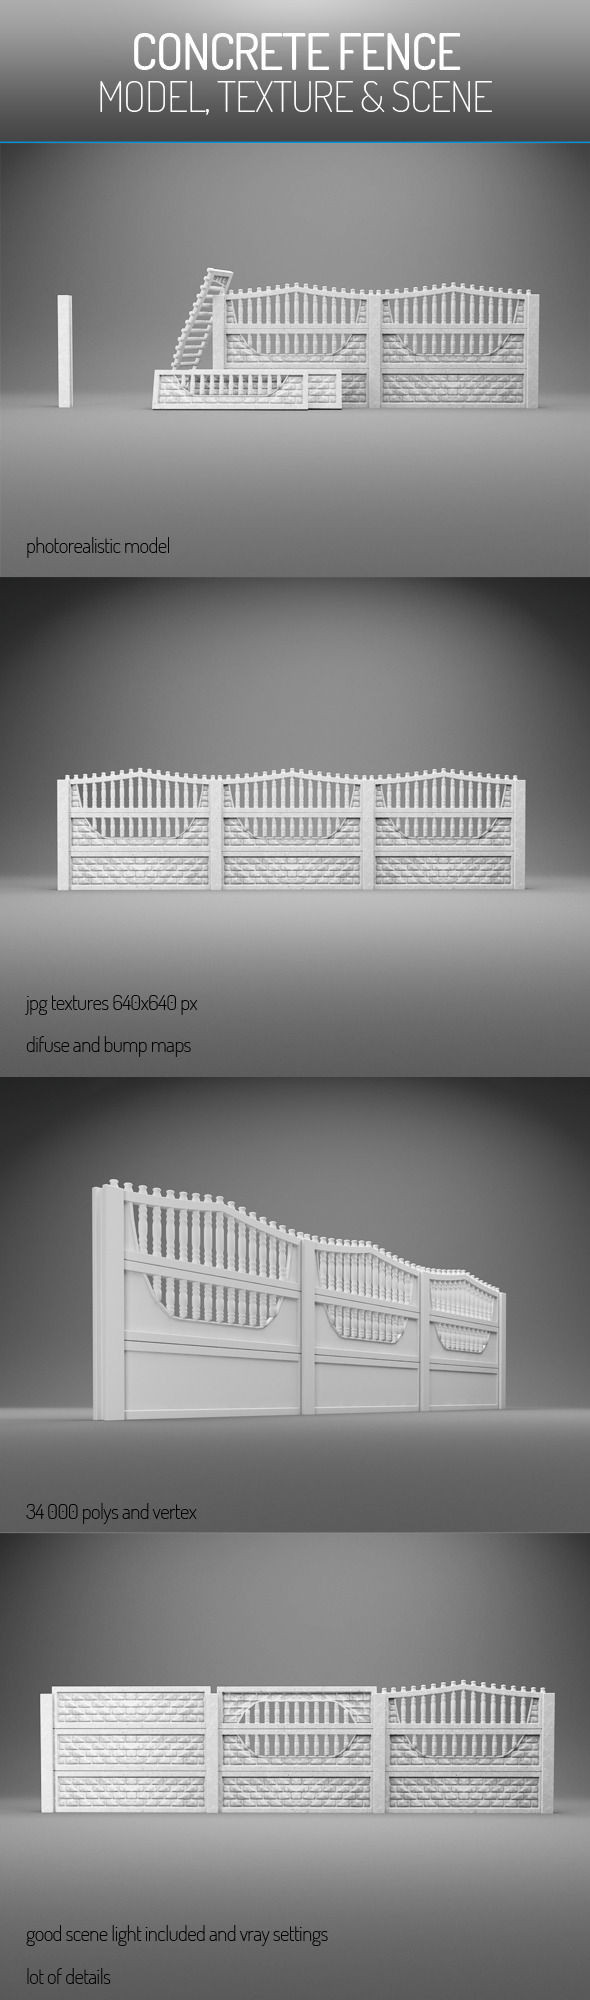 Concrete Fence - 3DOcean Item for Sale